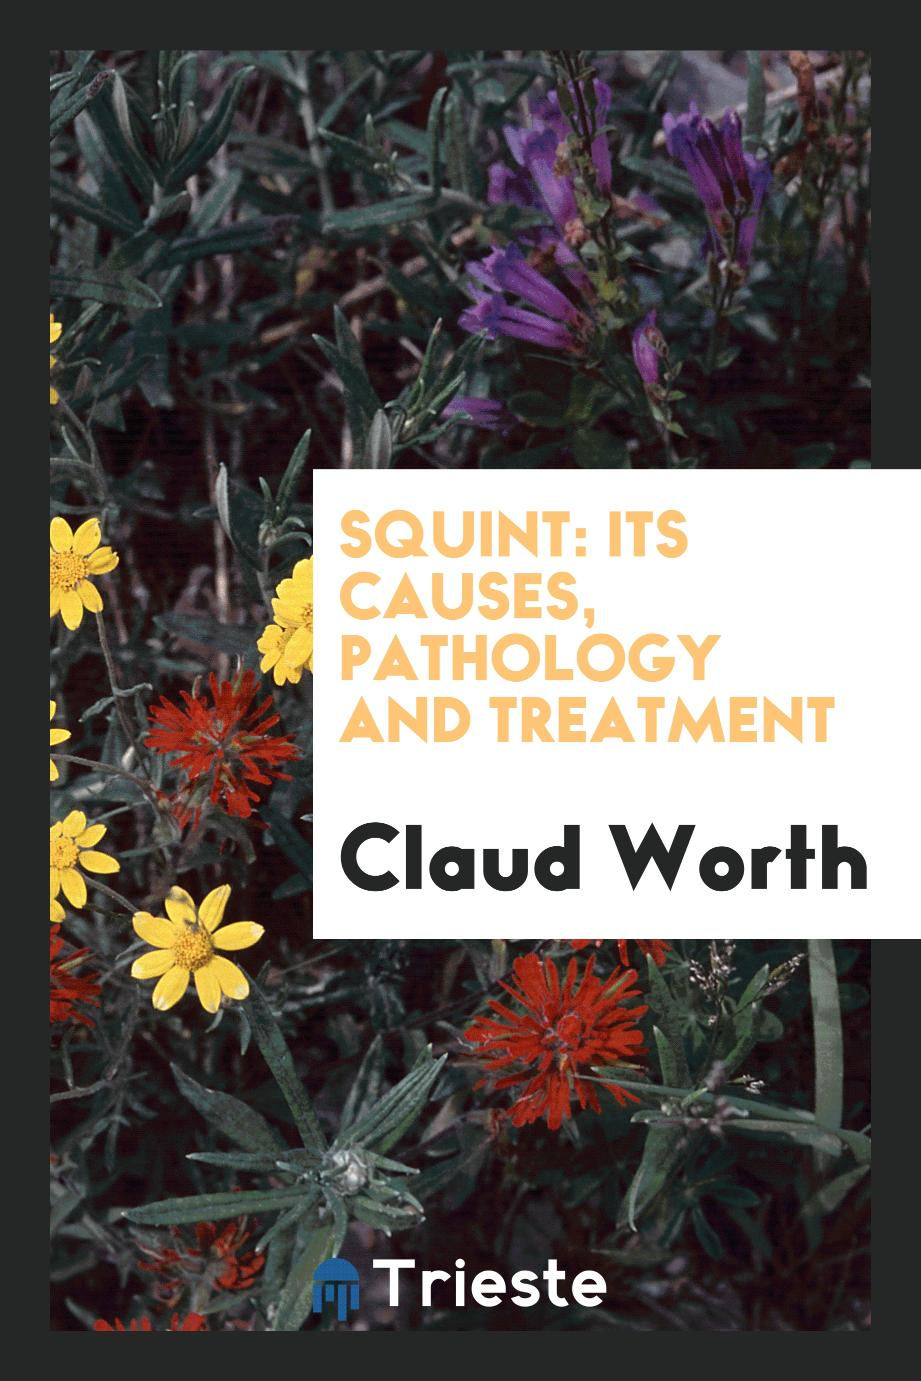 Squint: its causes, pathology and treatment